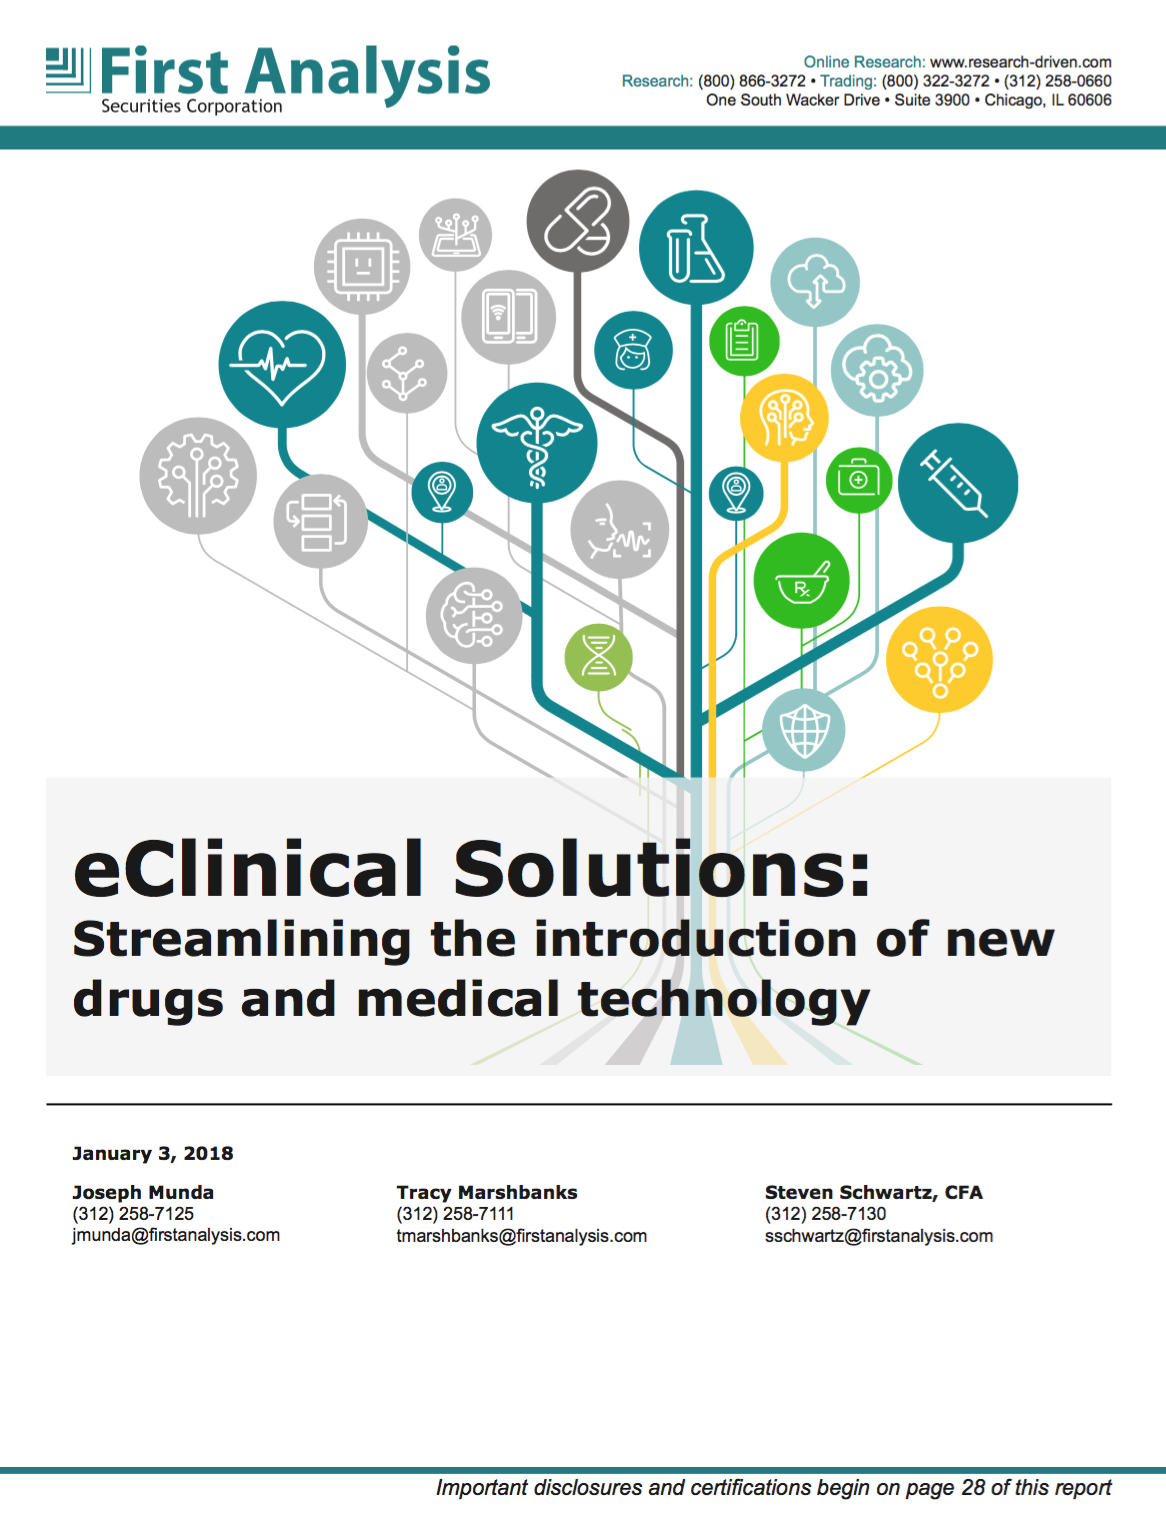 eClinical Solutions Report on RTSM, EDC, CTMS, eCOA